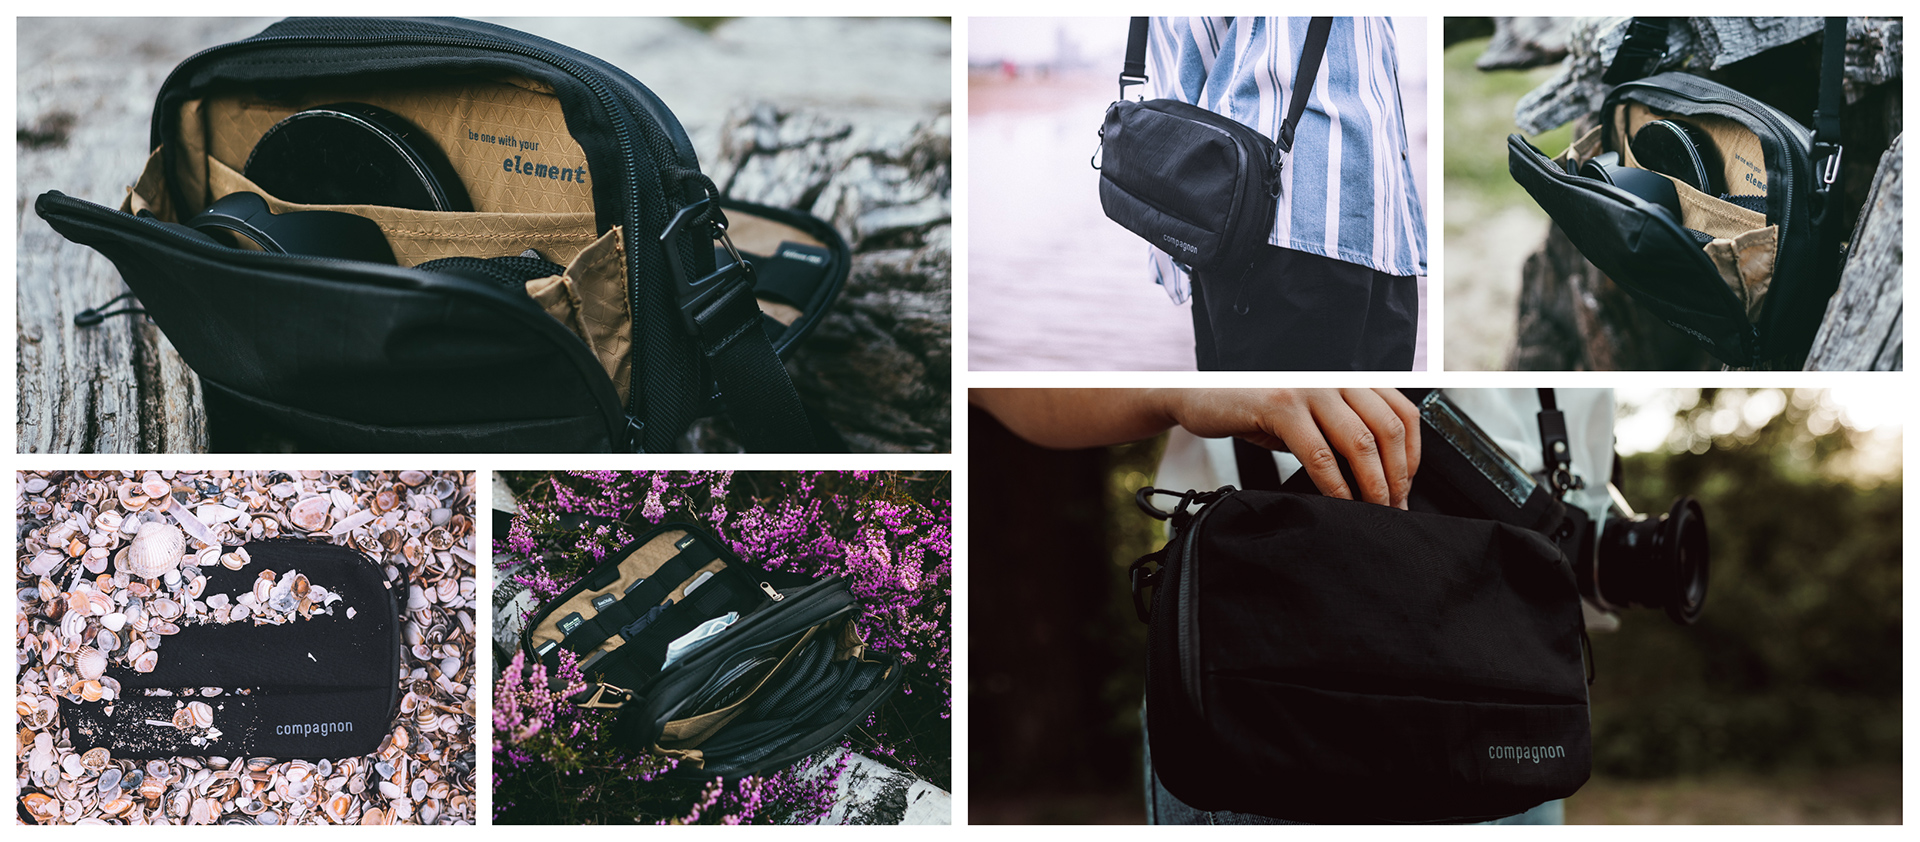 compagnon_Element_pouch_gearpouch_techpouch_xpac_photo_video_sling_bag_banner